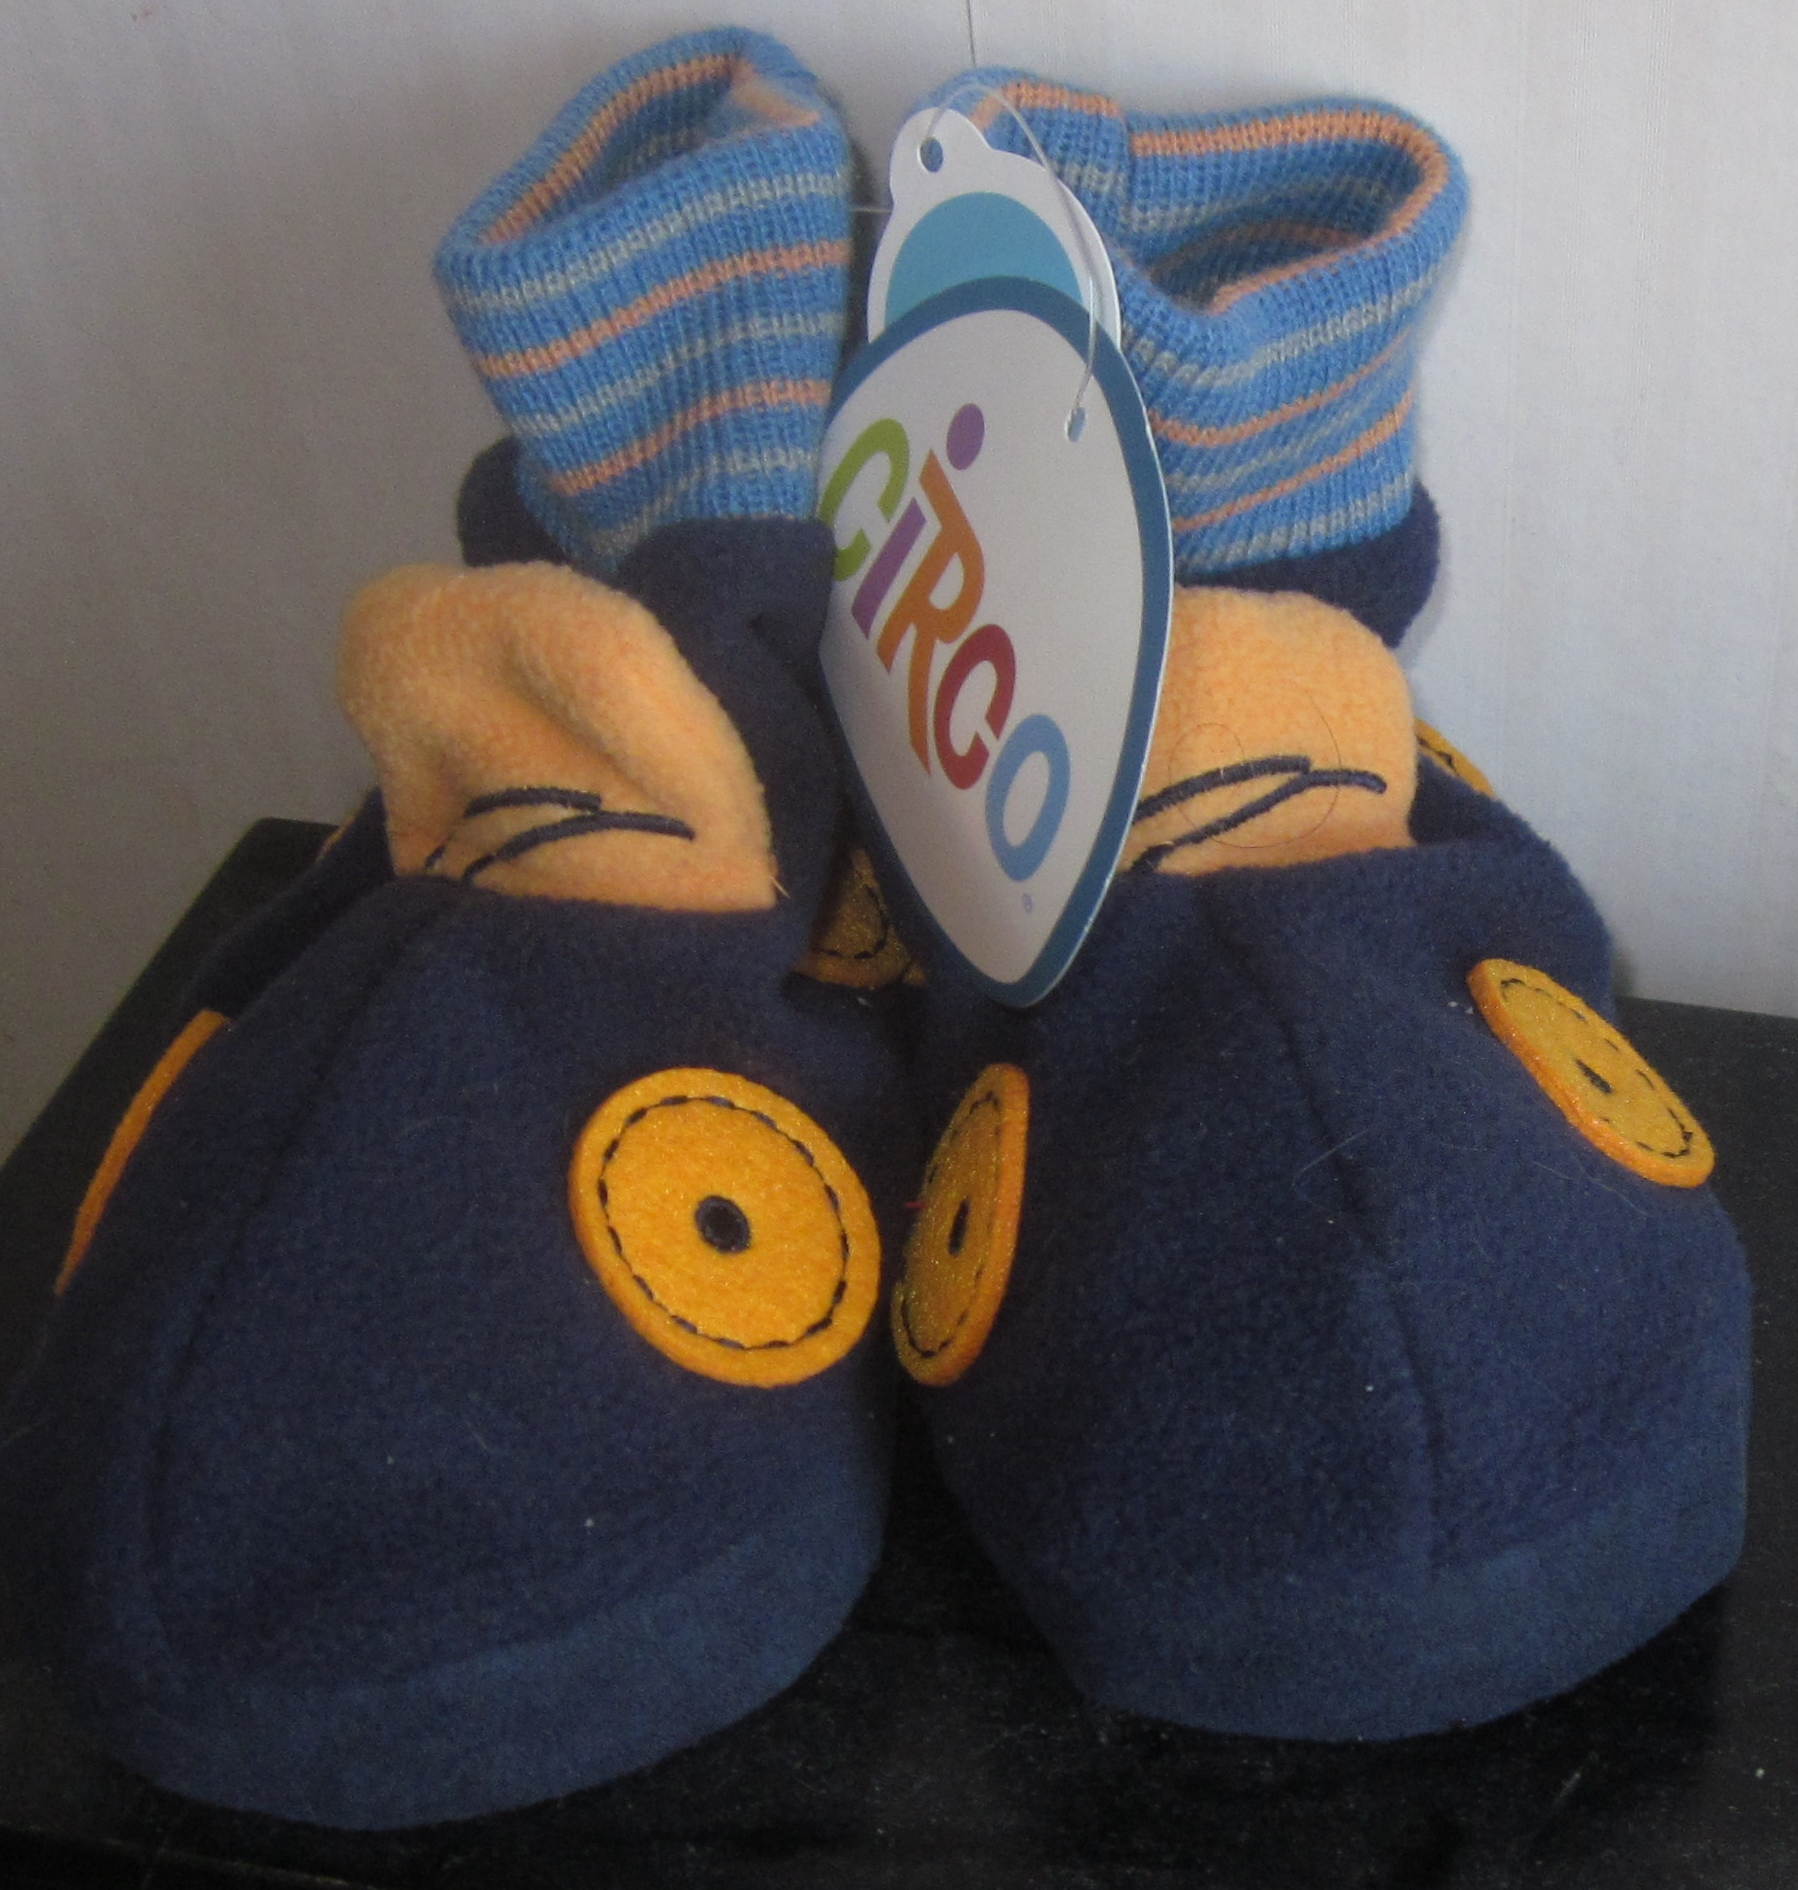 Circo Baby Slippers Booties Blue 12 months 24 months